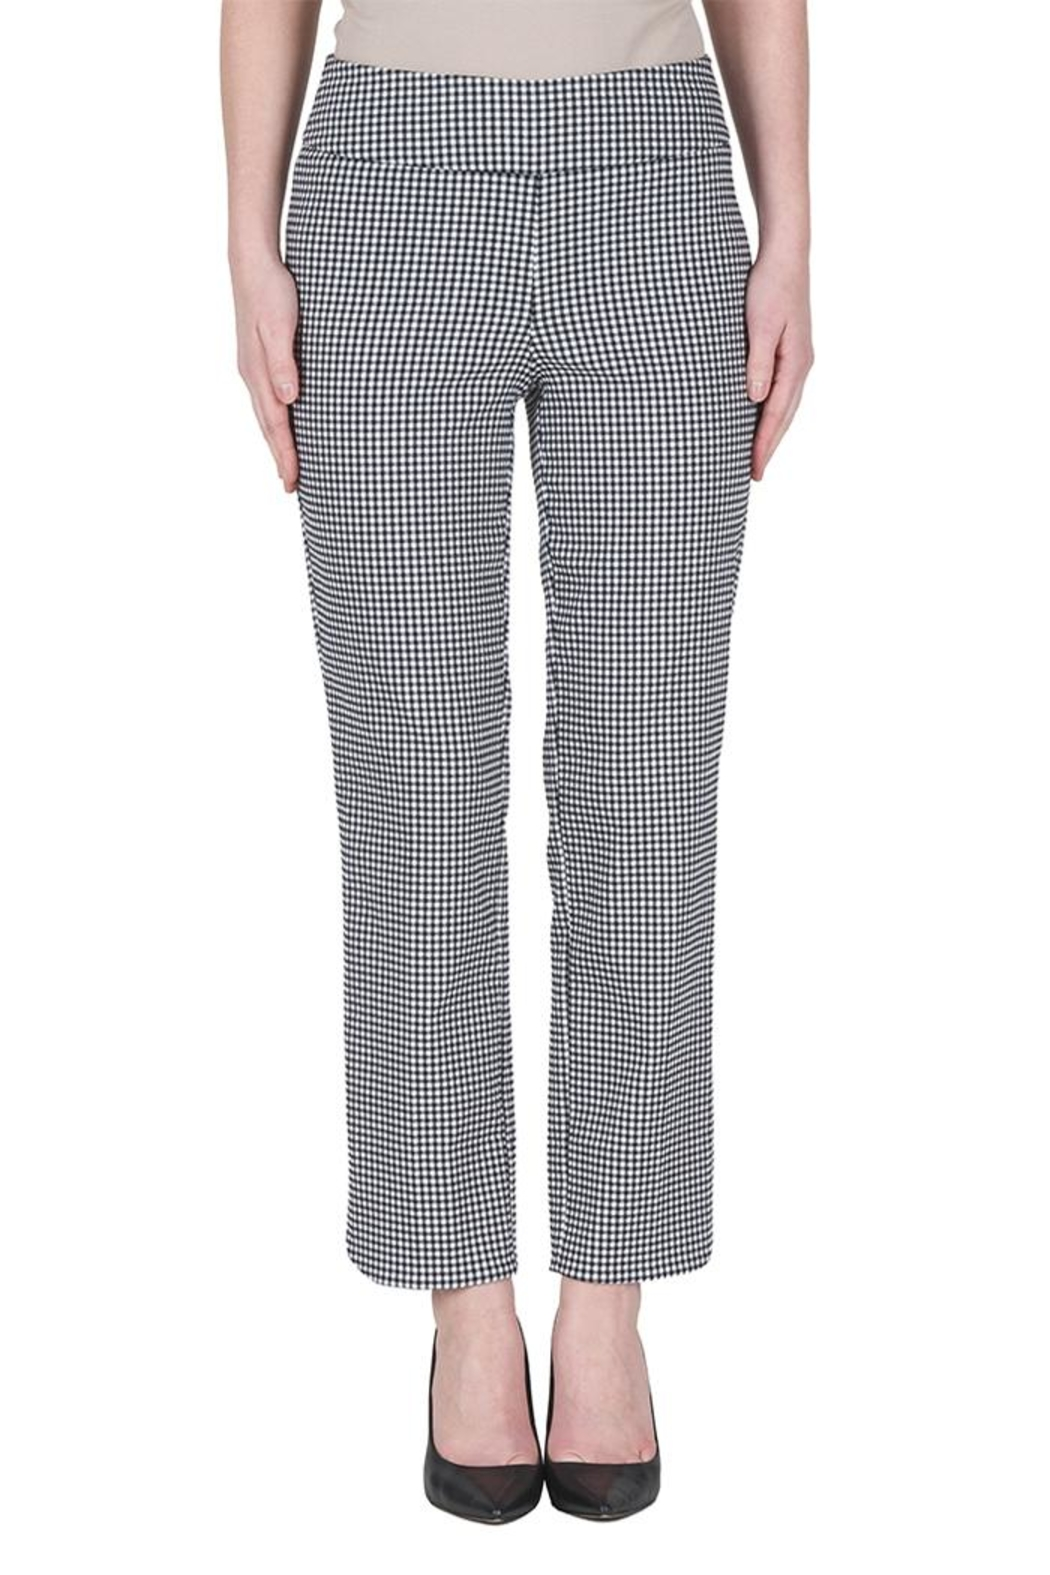 Joseph Ribkoff Gingham Ankle Pants - Front Cropped Image